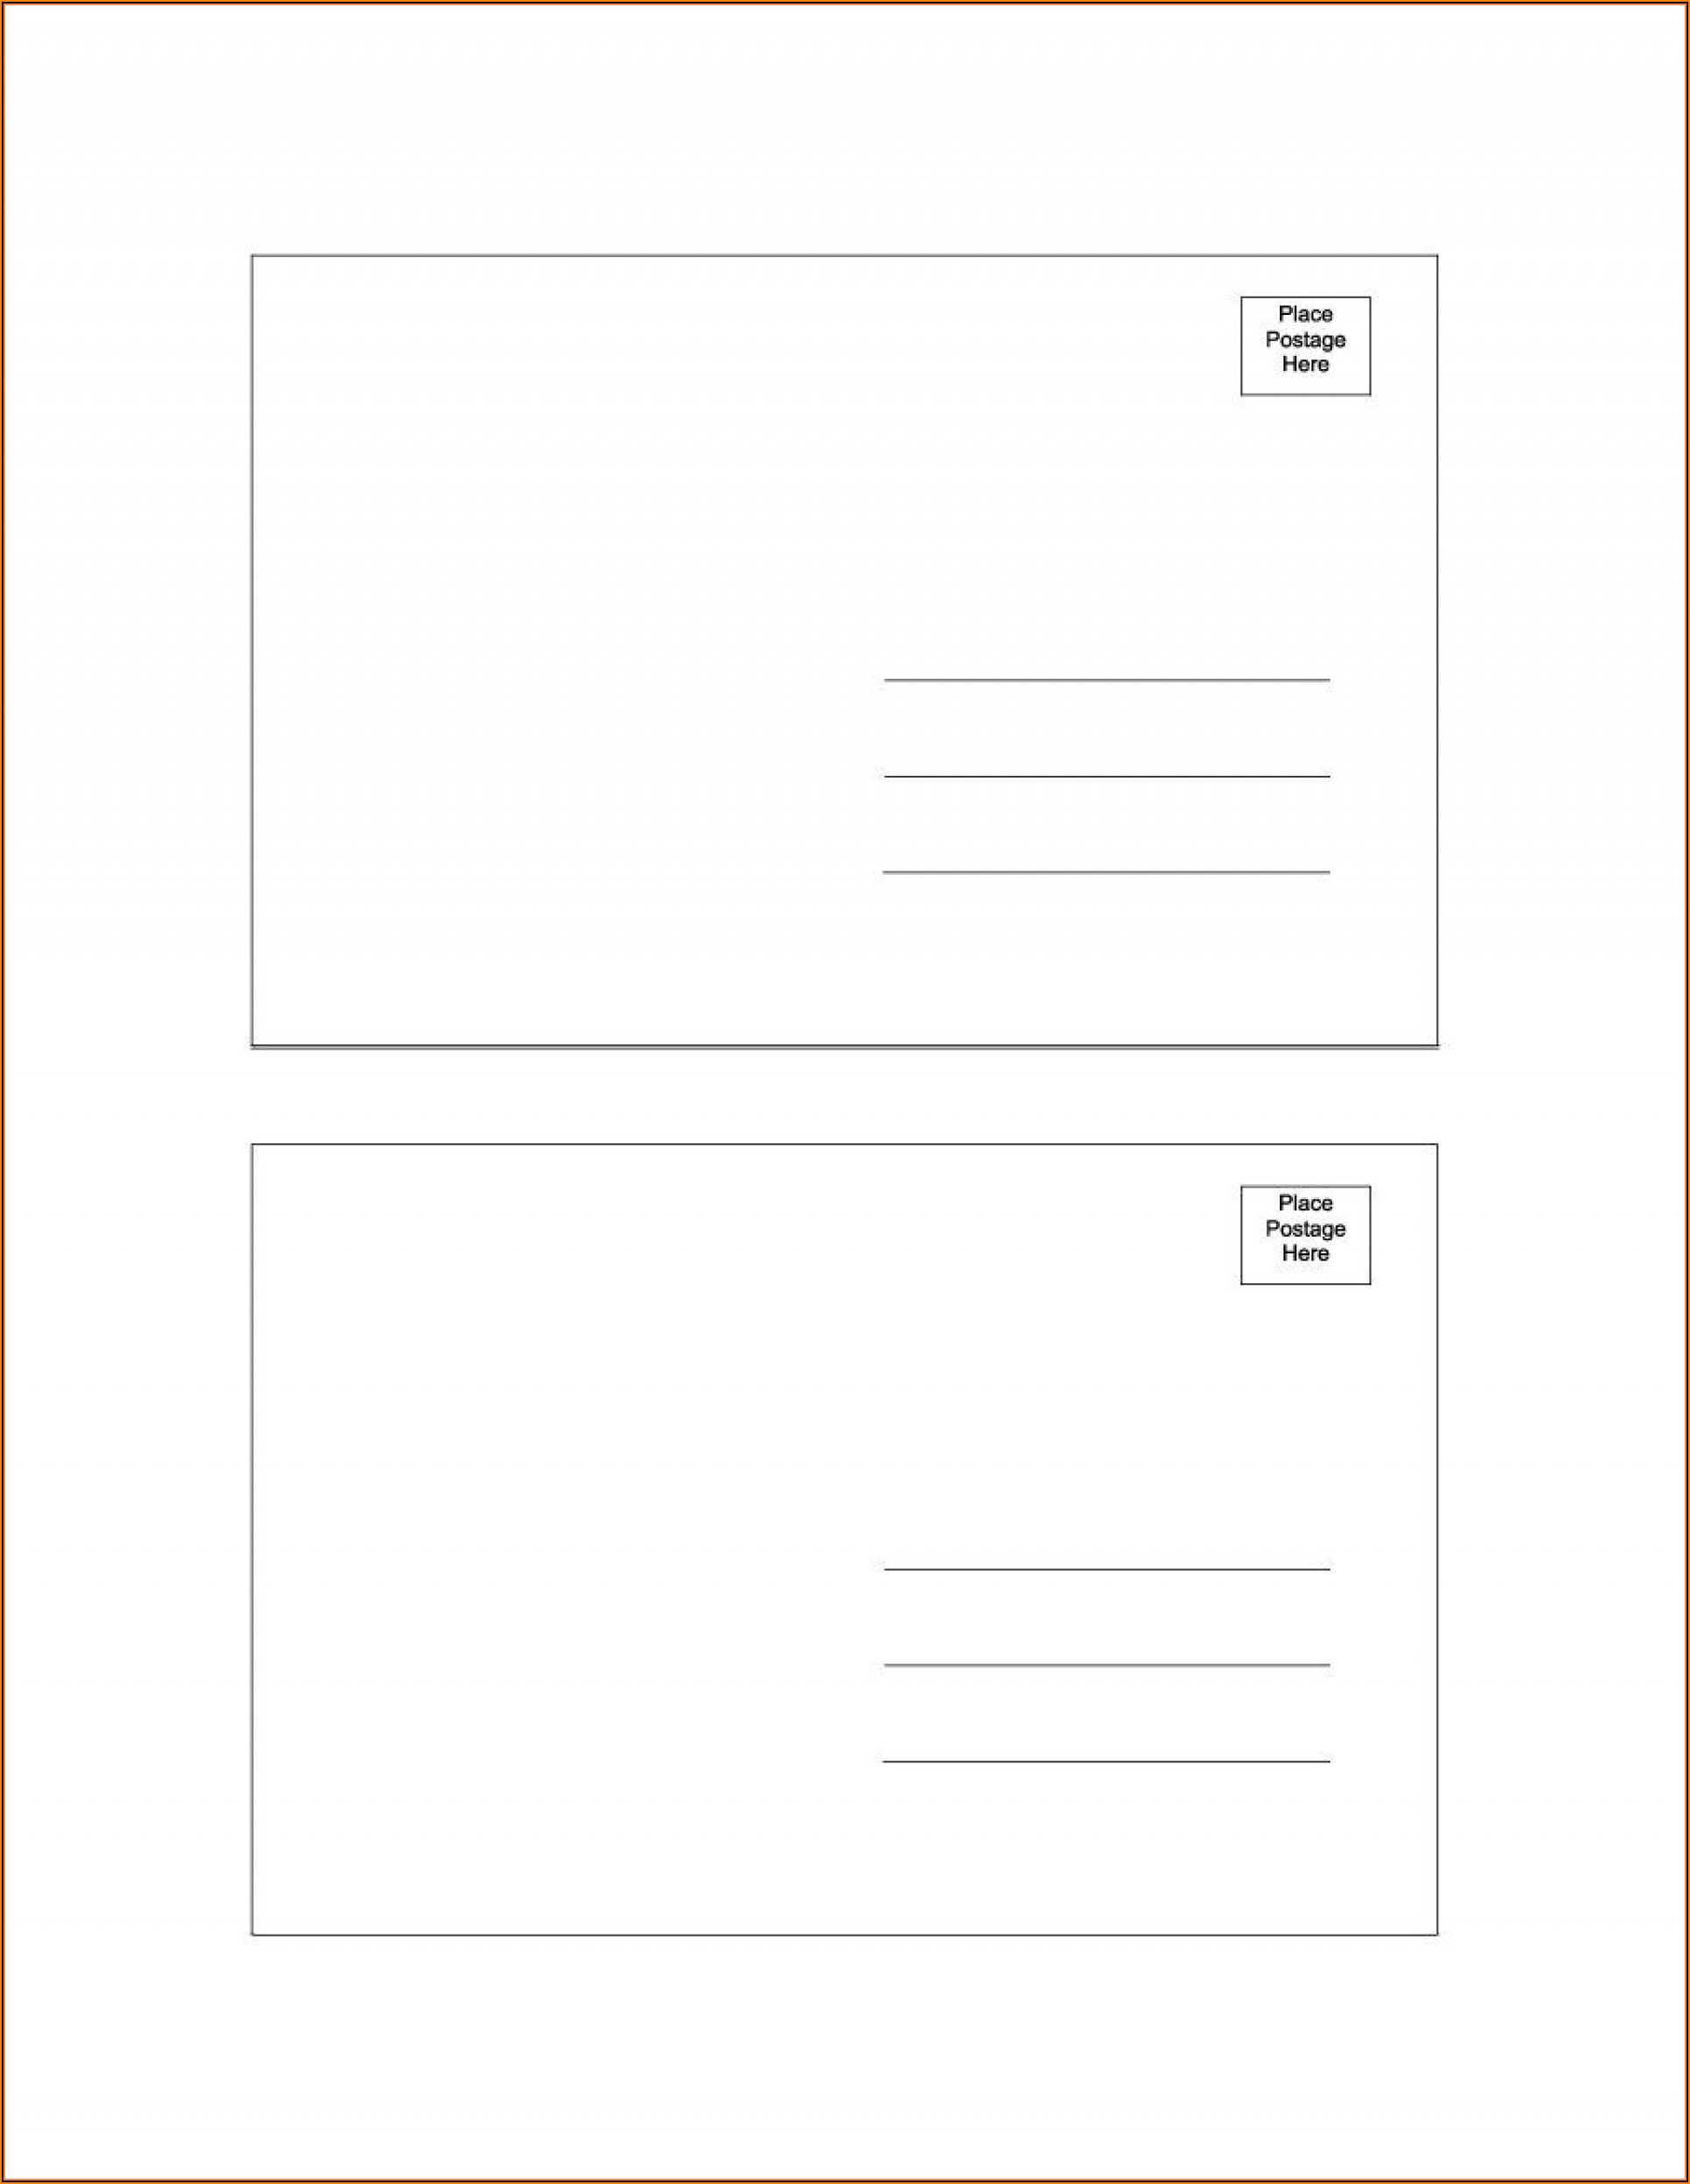 Free Real Estate Postcard Templates Microsoft Word